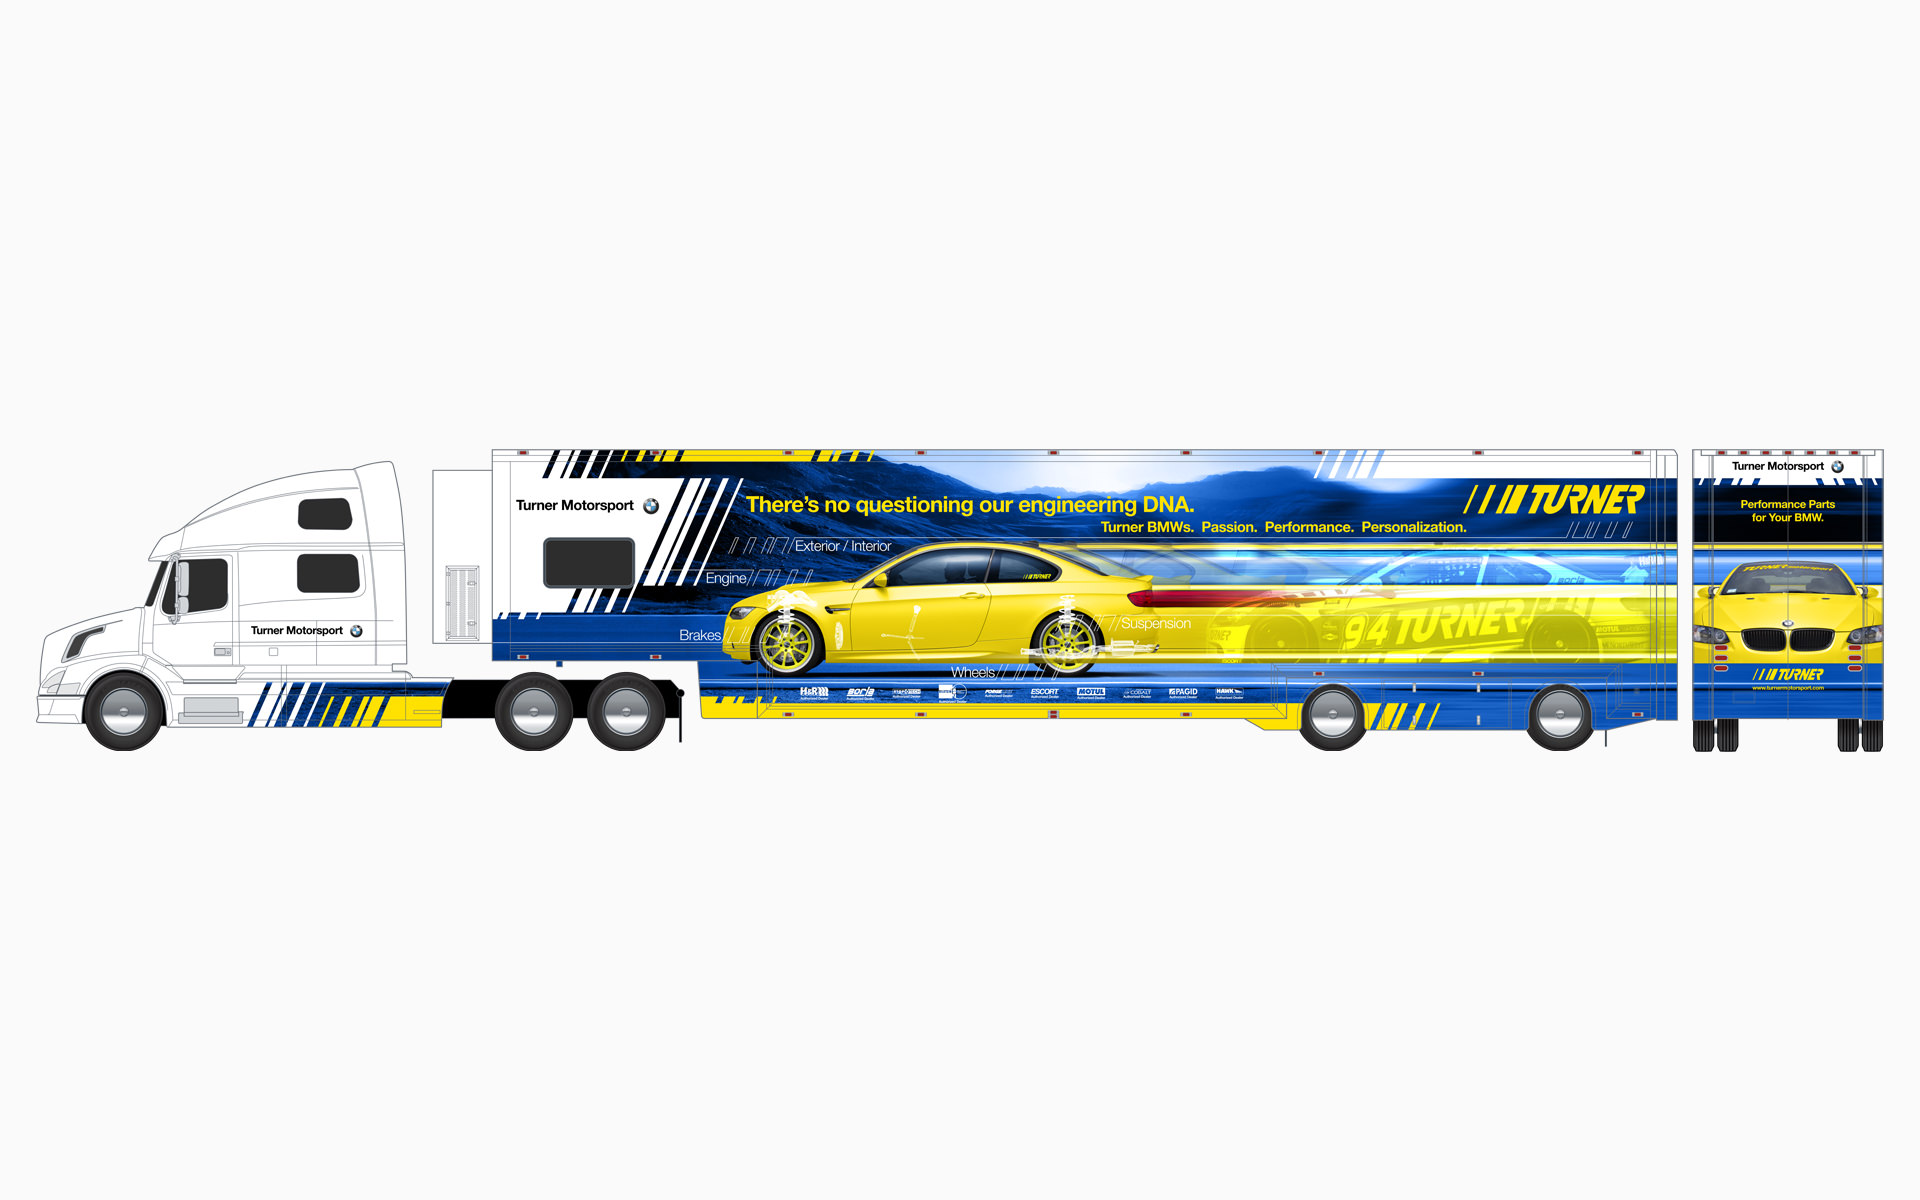 Turner Motorsport BMW Transporter Livery Elevations